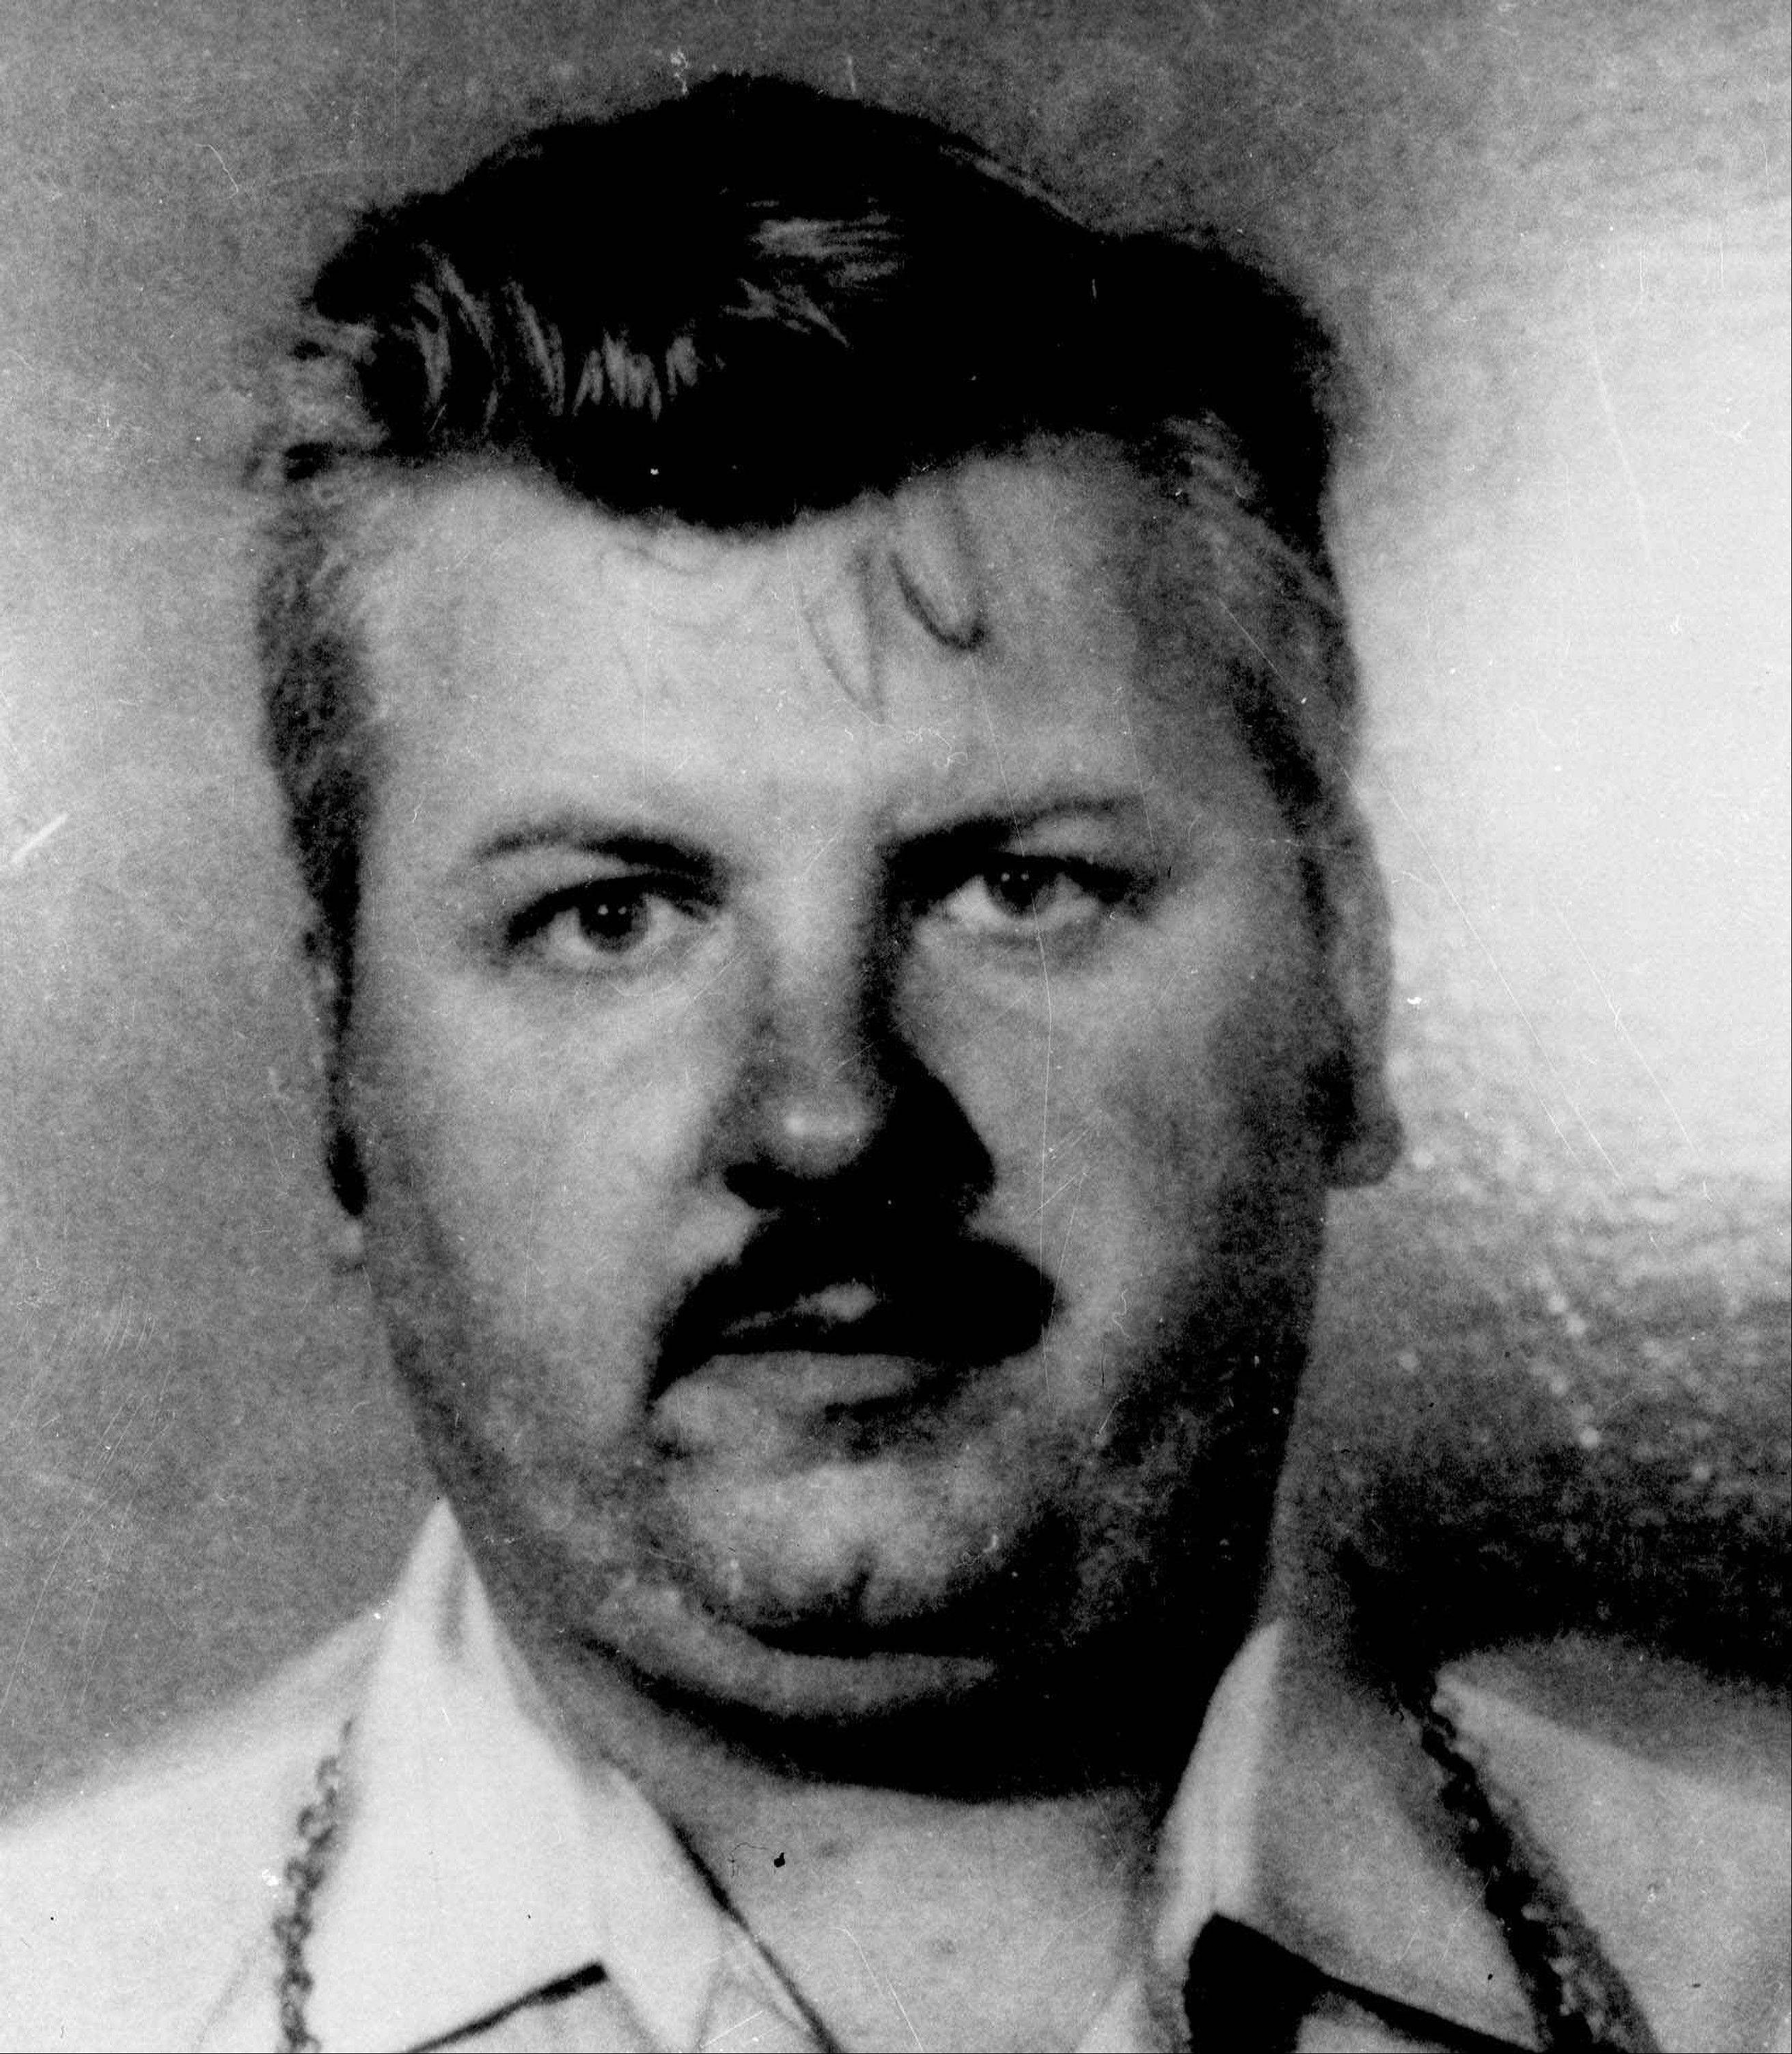 Serial killer John Wayne Gacy in 1978.